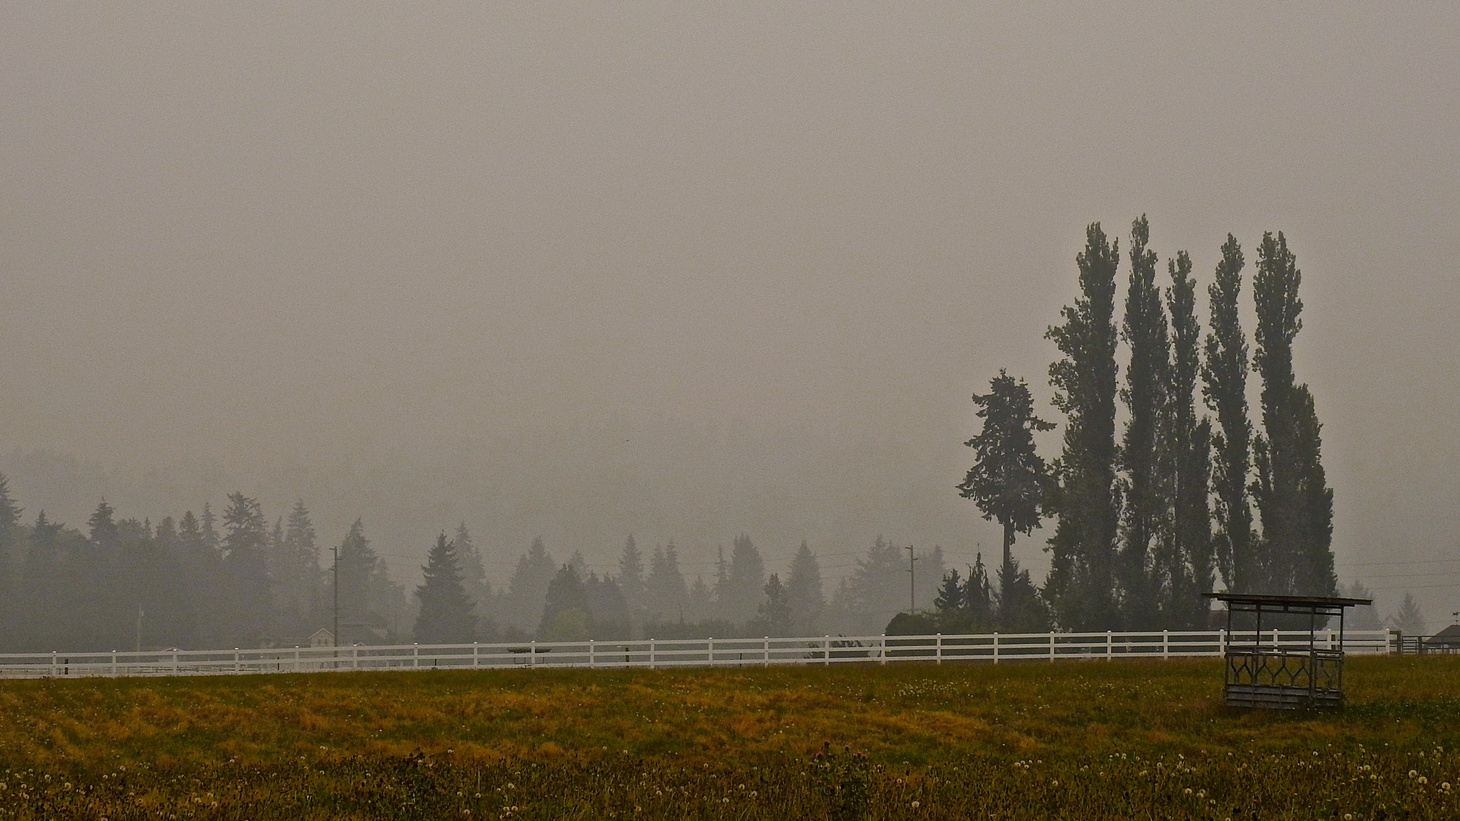 The west coast has been under a blanket of smoke from wildfires. Photo taken on September 14, 2020.